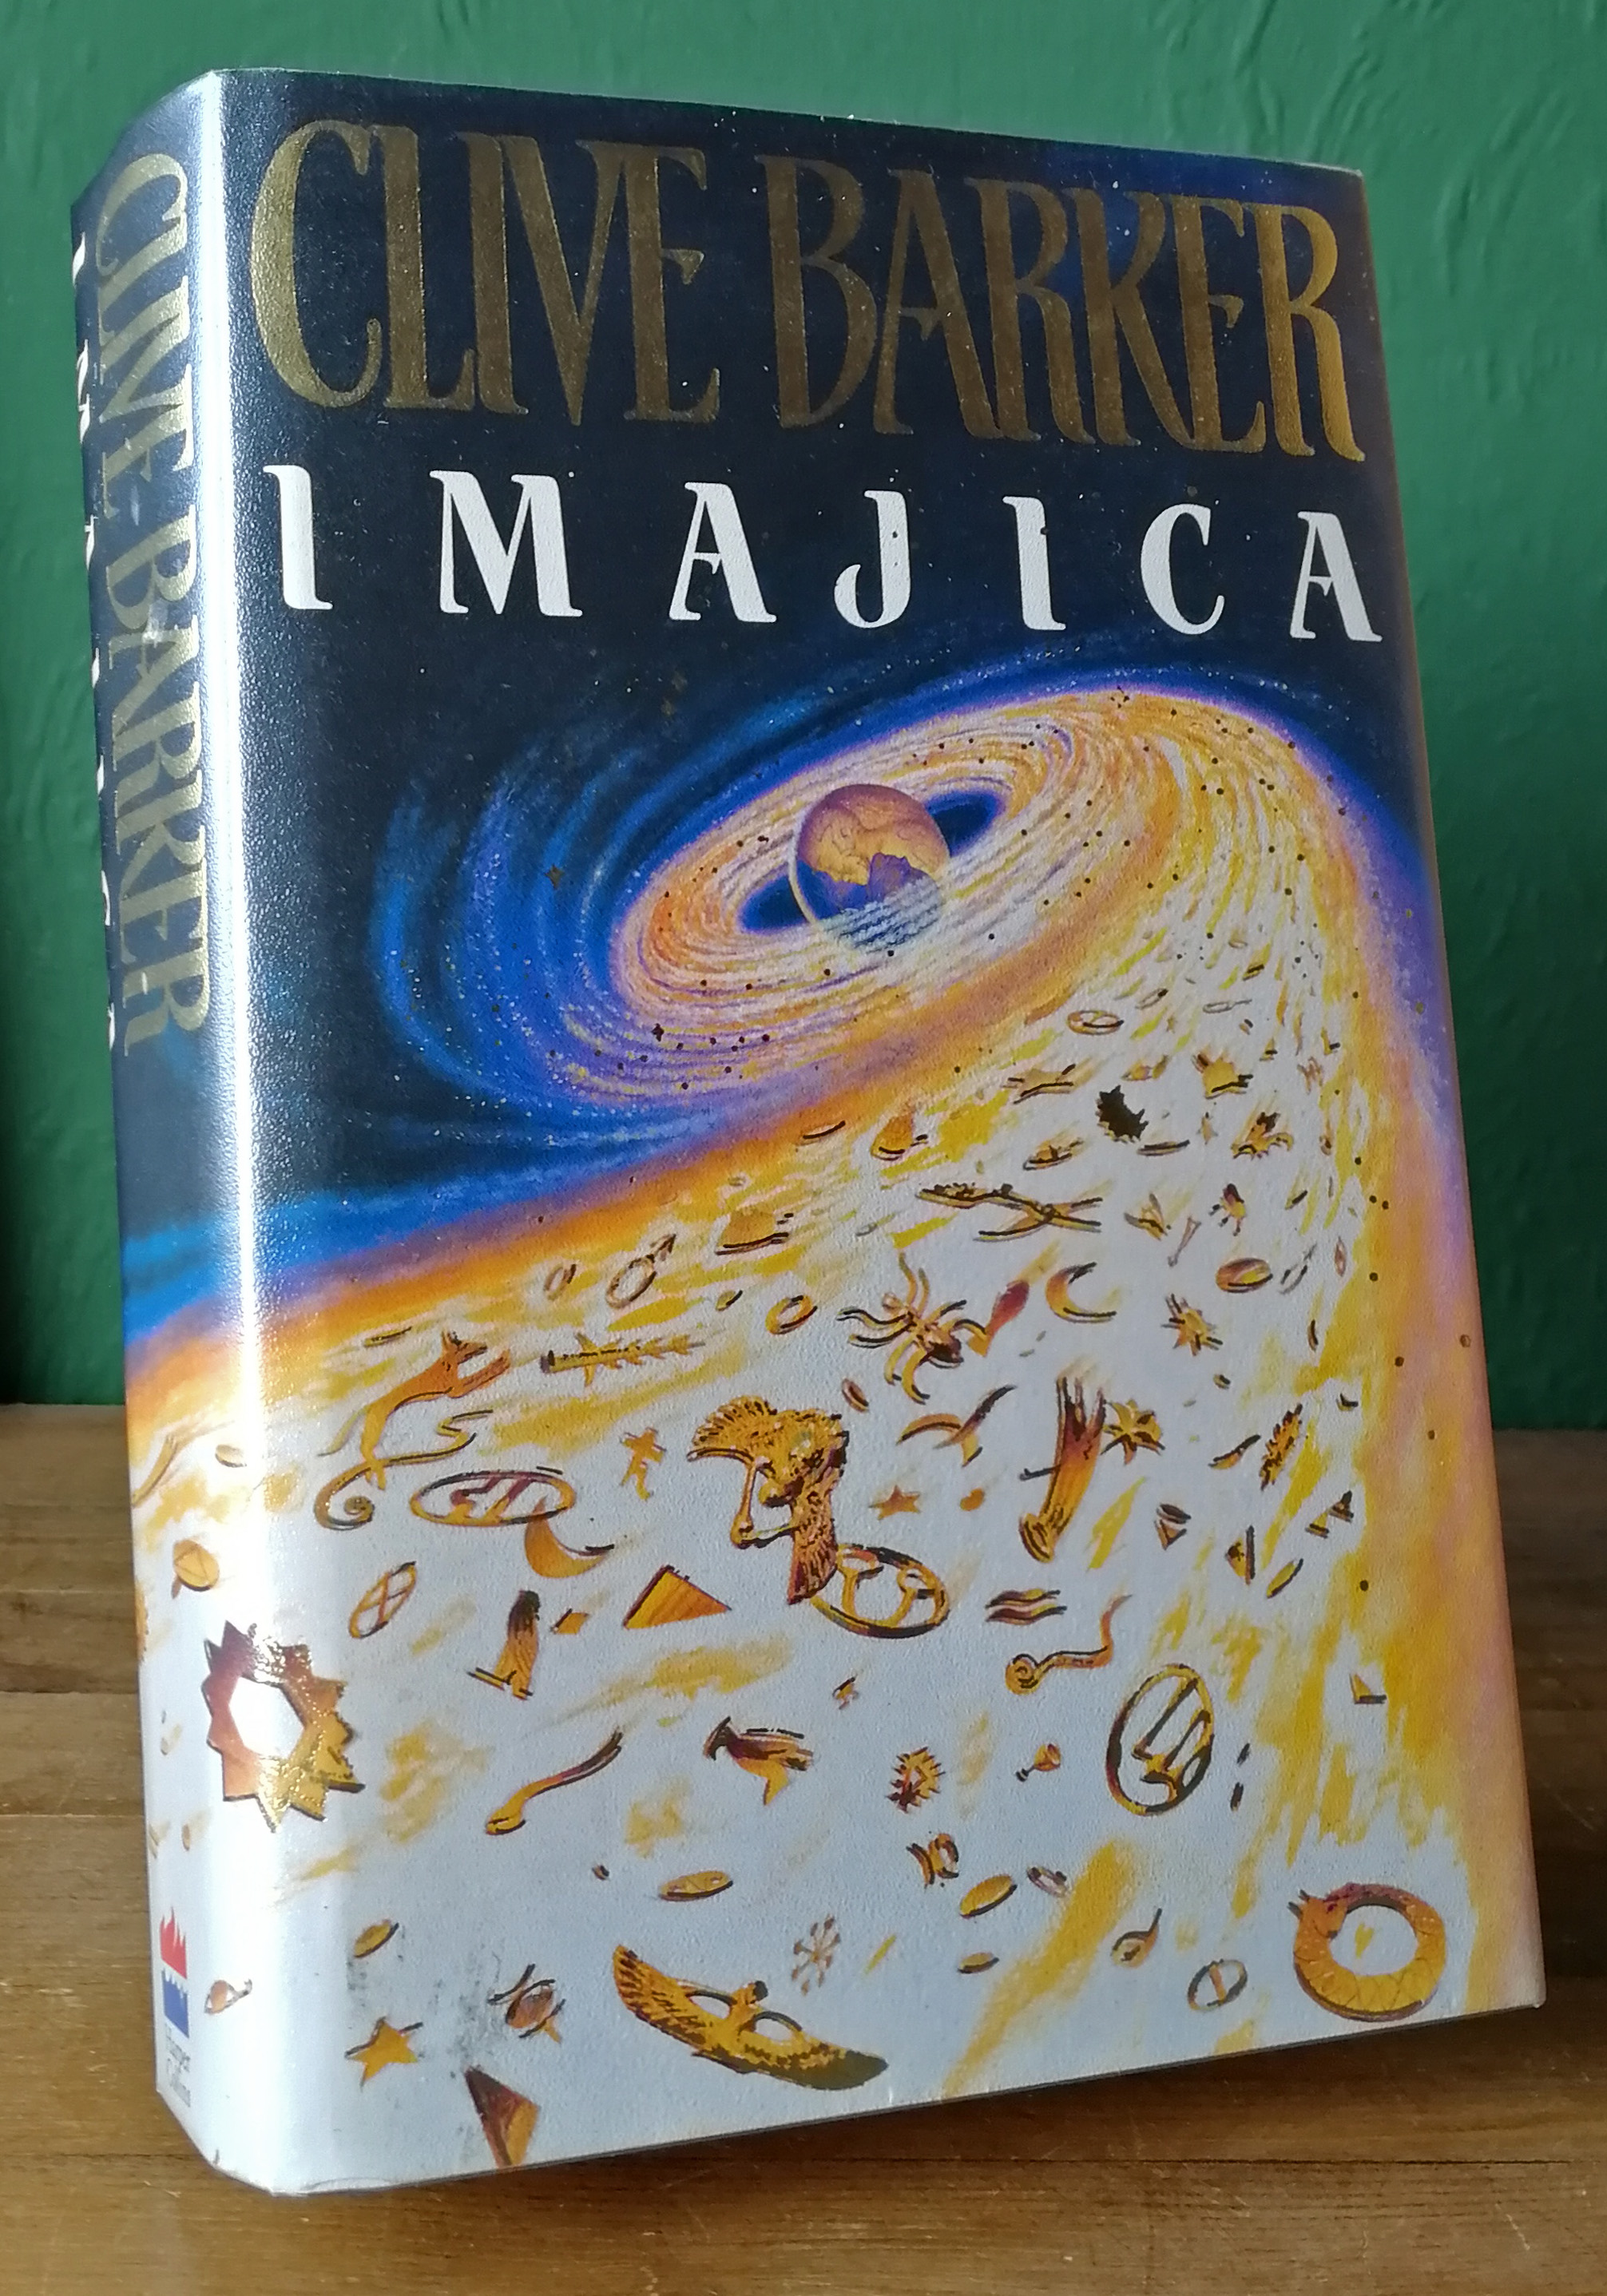 Imajica Signed UK First Edition